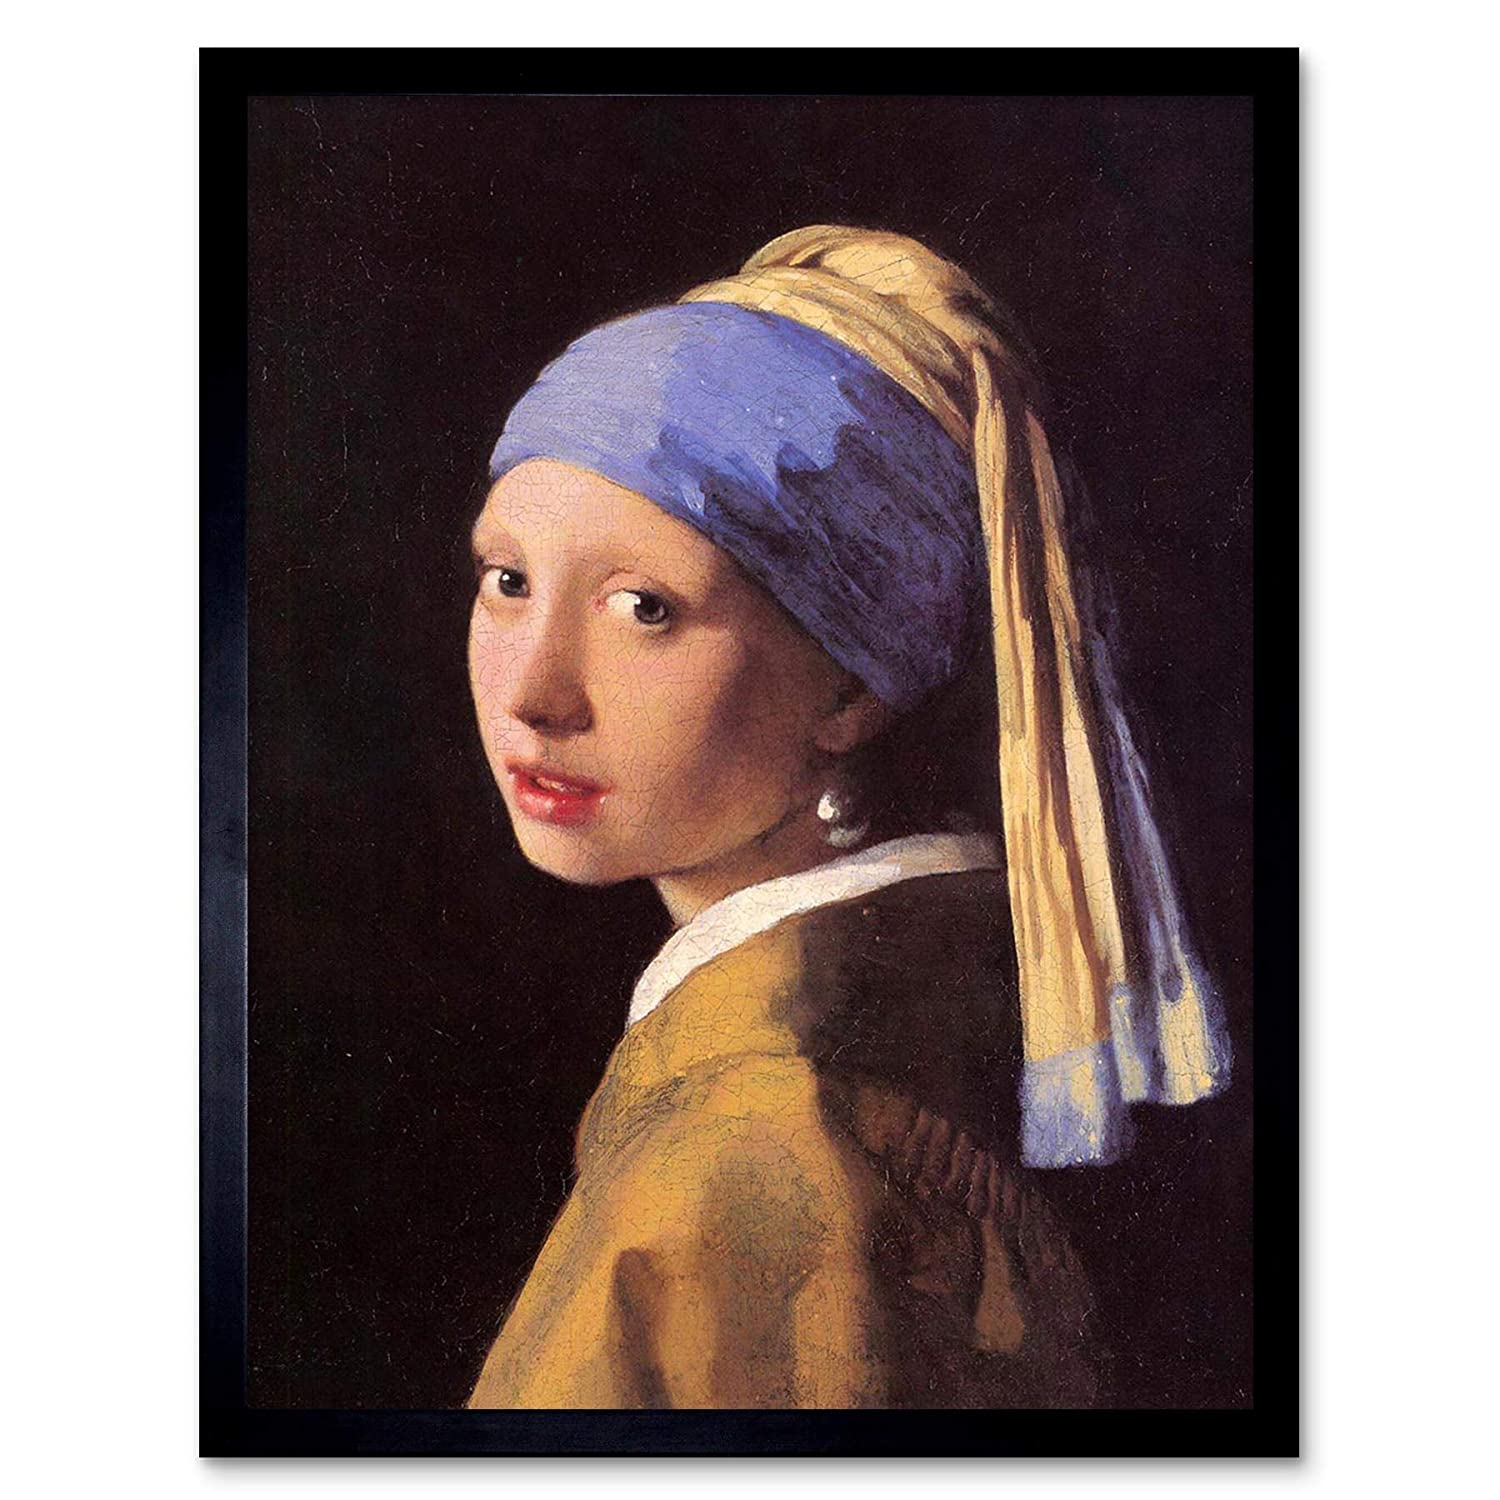 f8db3786b6e Amazon.com  Wee Blue Coo Johannes Vermeer Girl with Pearl Earring Old  Master Painting Unframed Wall Art Print Poster Home Decor Premium  Home    Kitchen